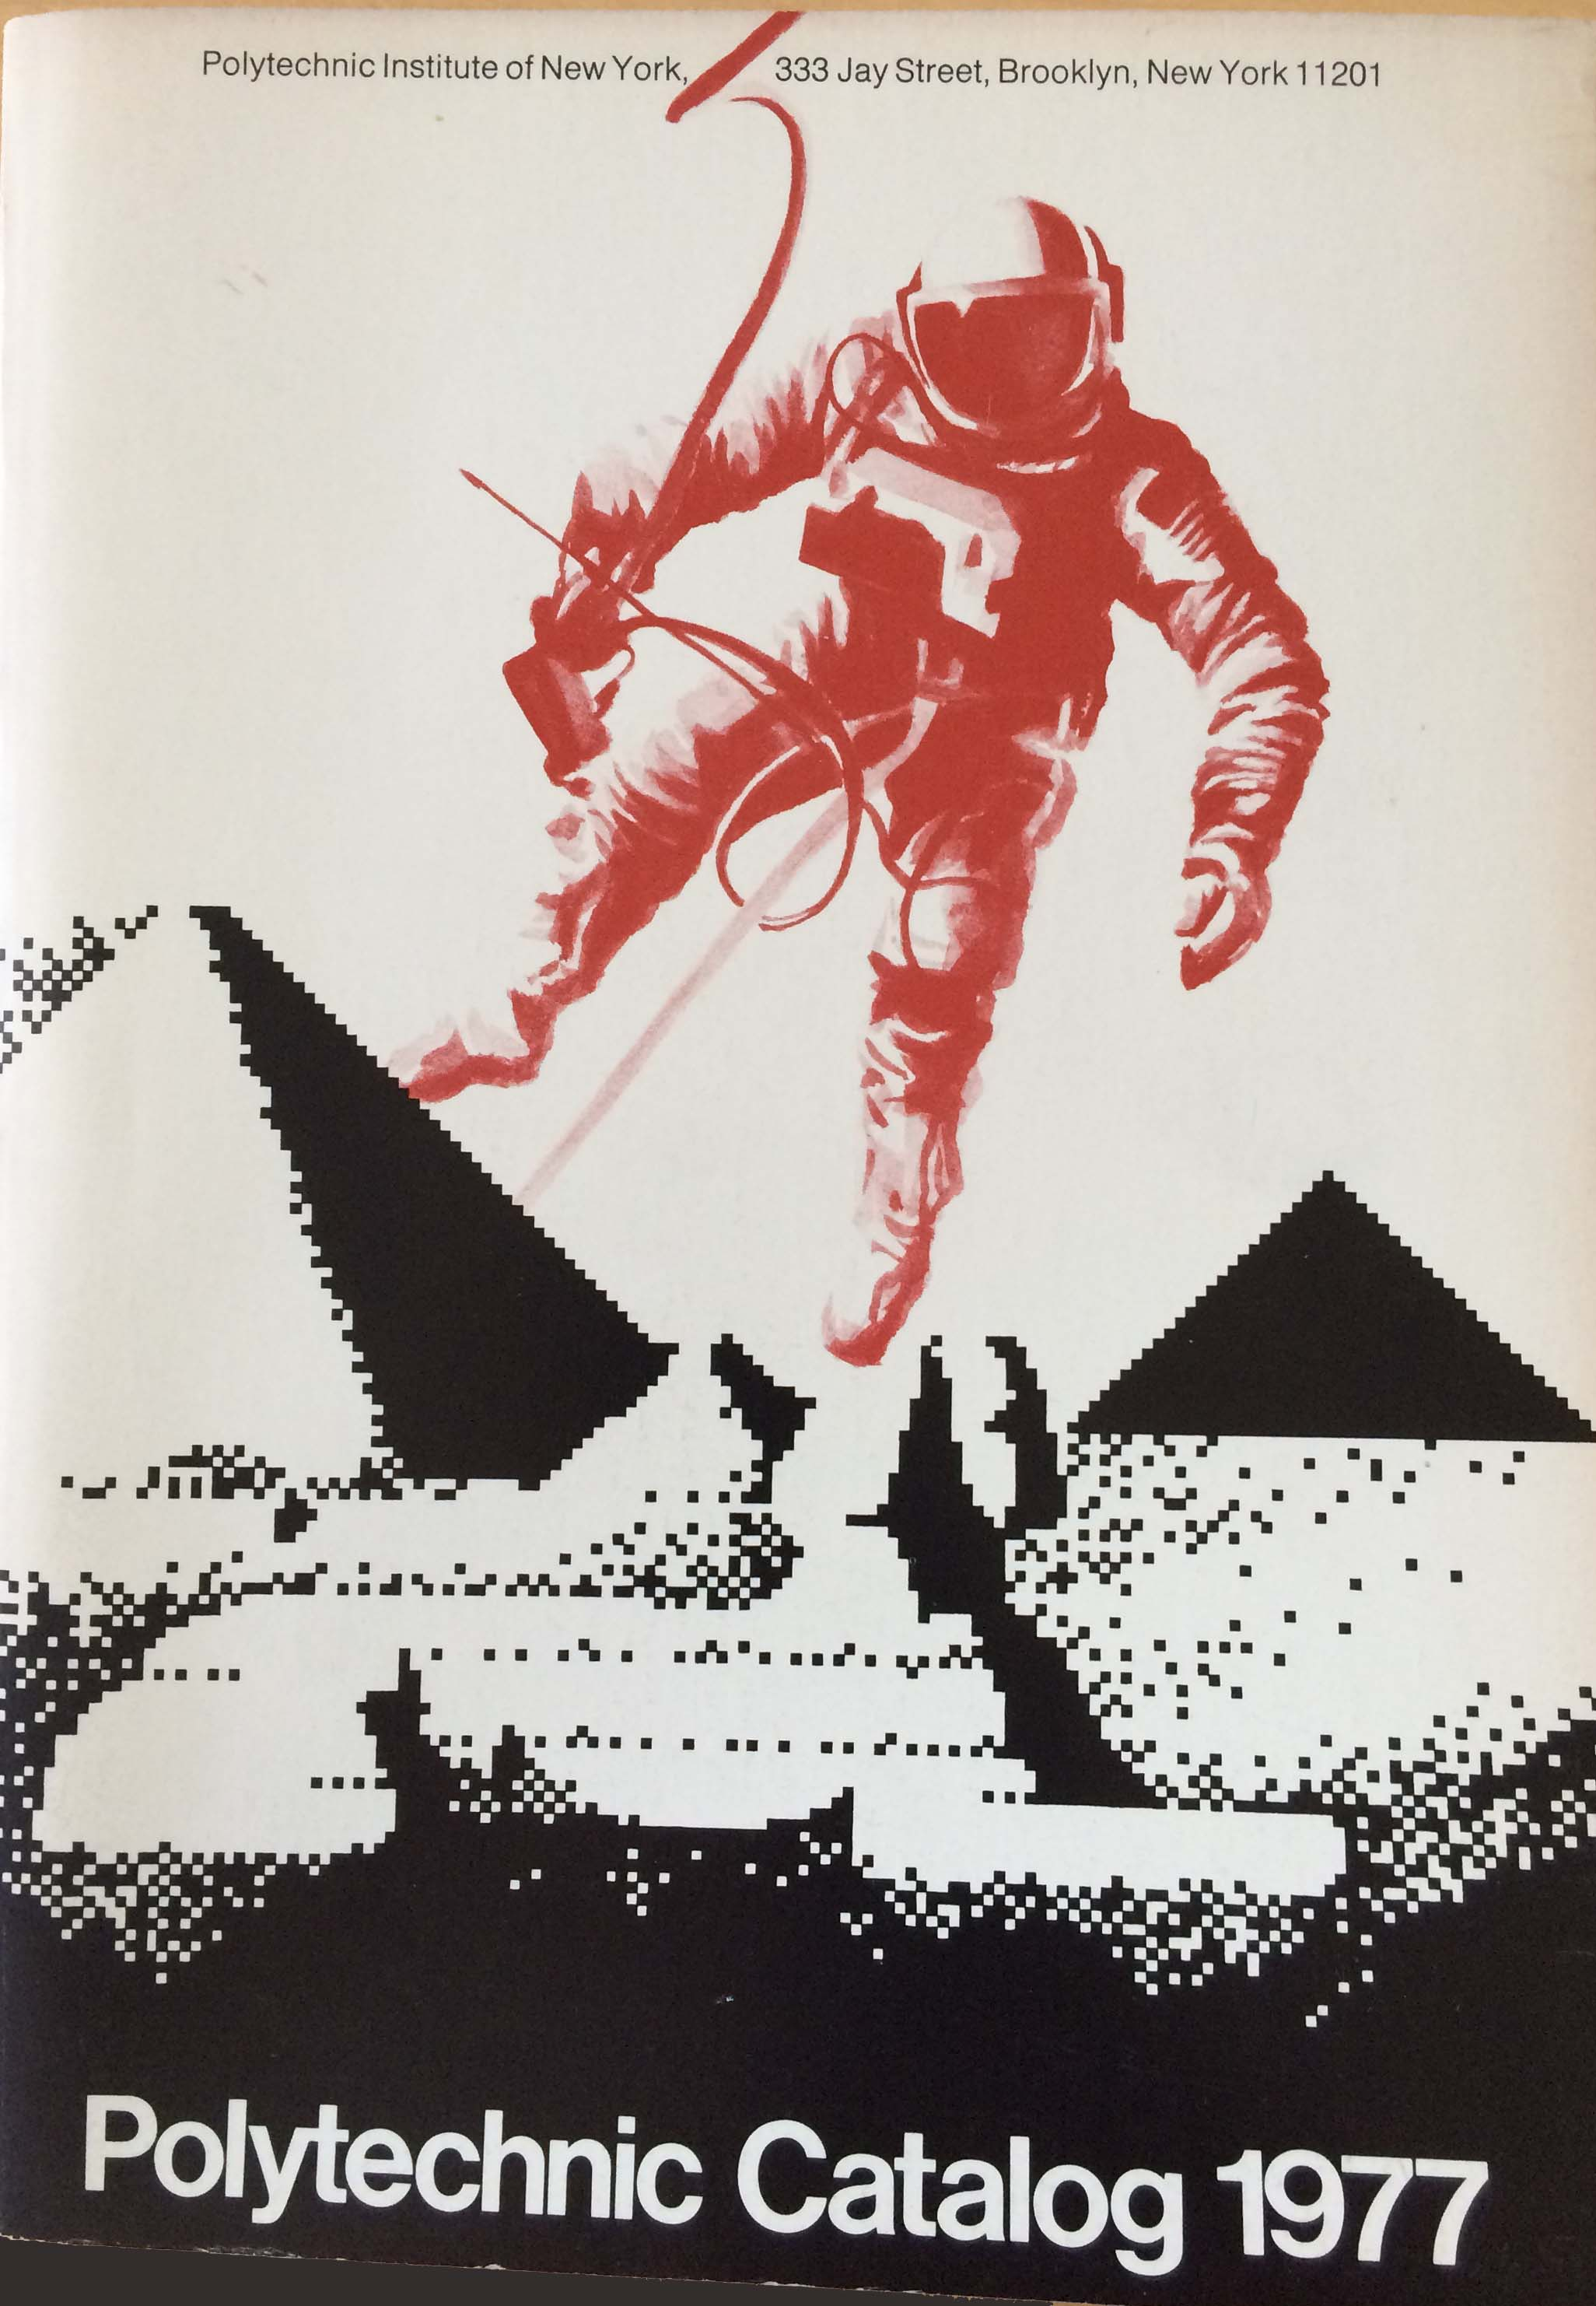 Polytechnic Catalog 1977 cover with astronaut hovering above Egyptian pyramids.